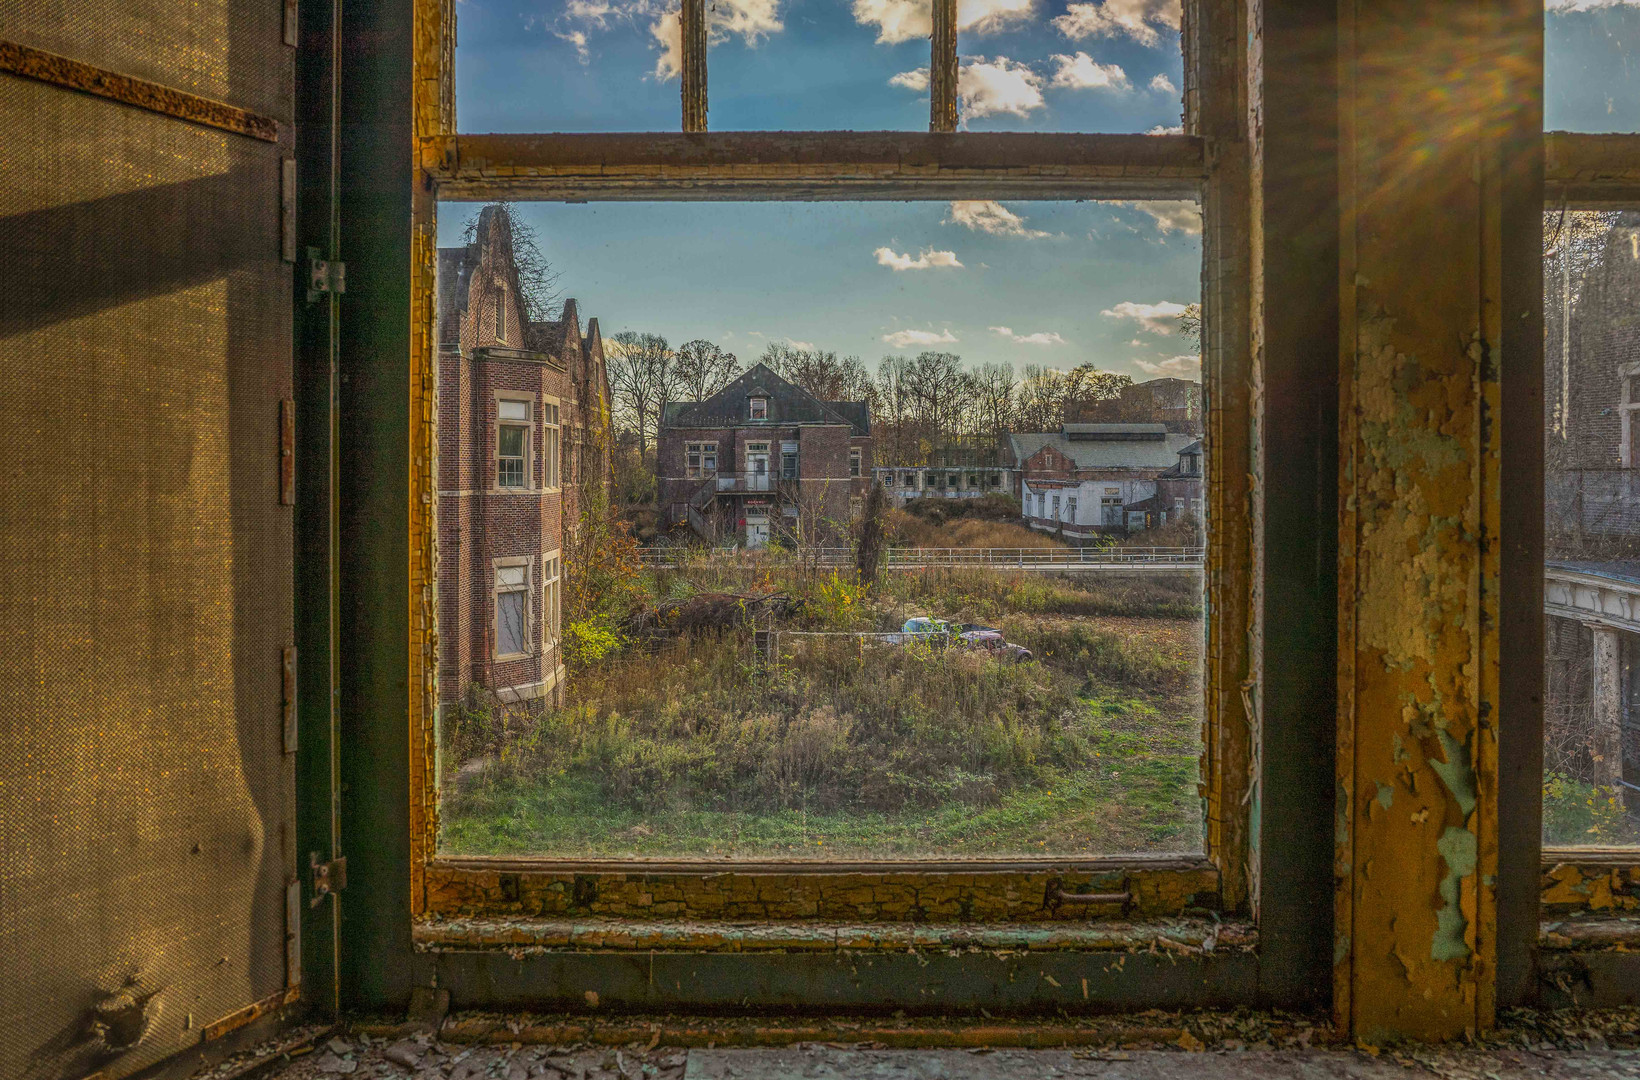 Looking Out, Pennhurst State School